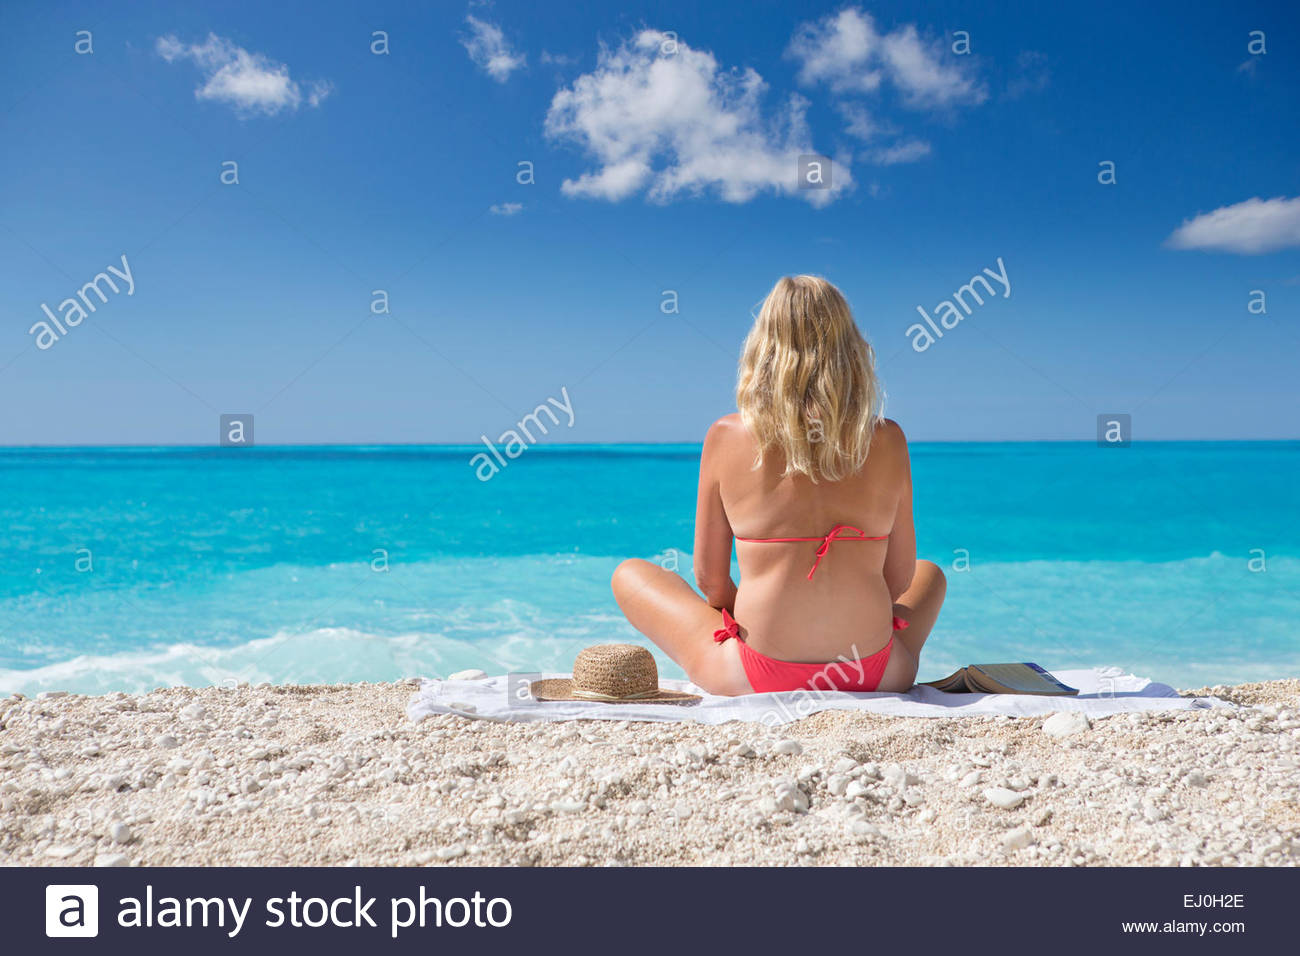 woman, looking out to sea, sitting on towel on sunny beach - Stock Image